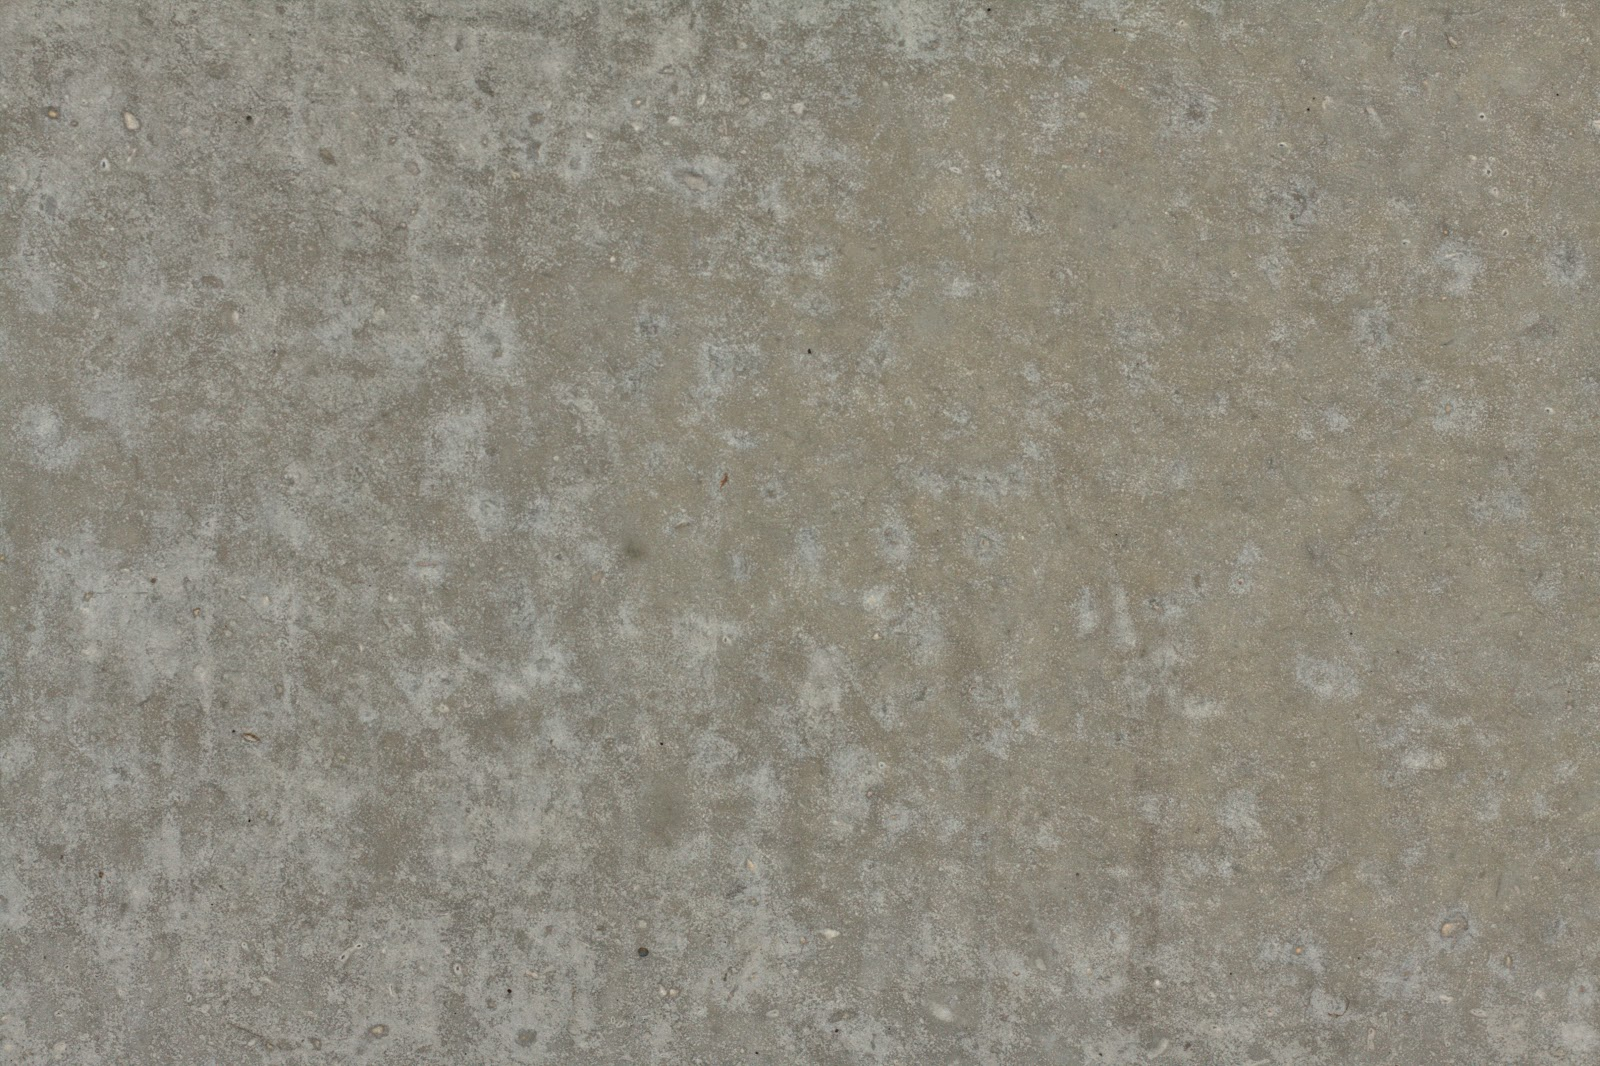 (CONCRETE 25) granite wall grunge pillar texture 4770x3178